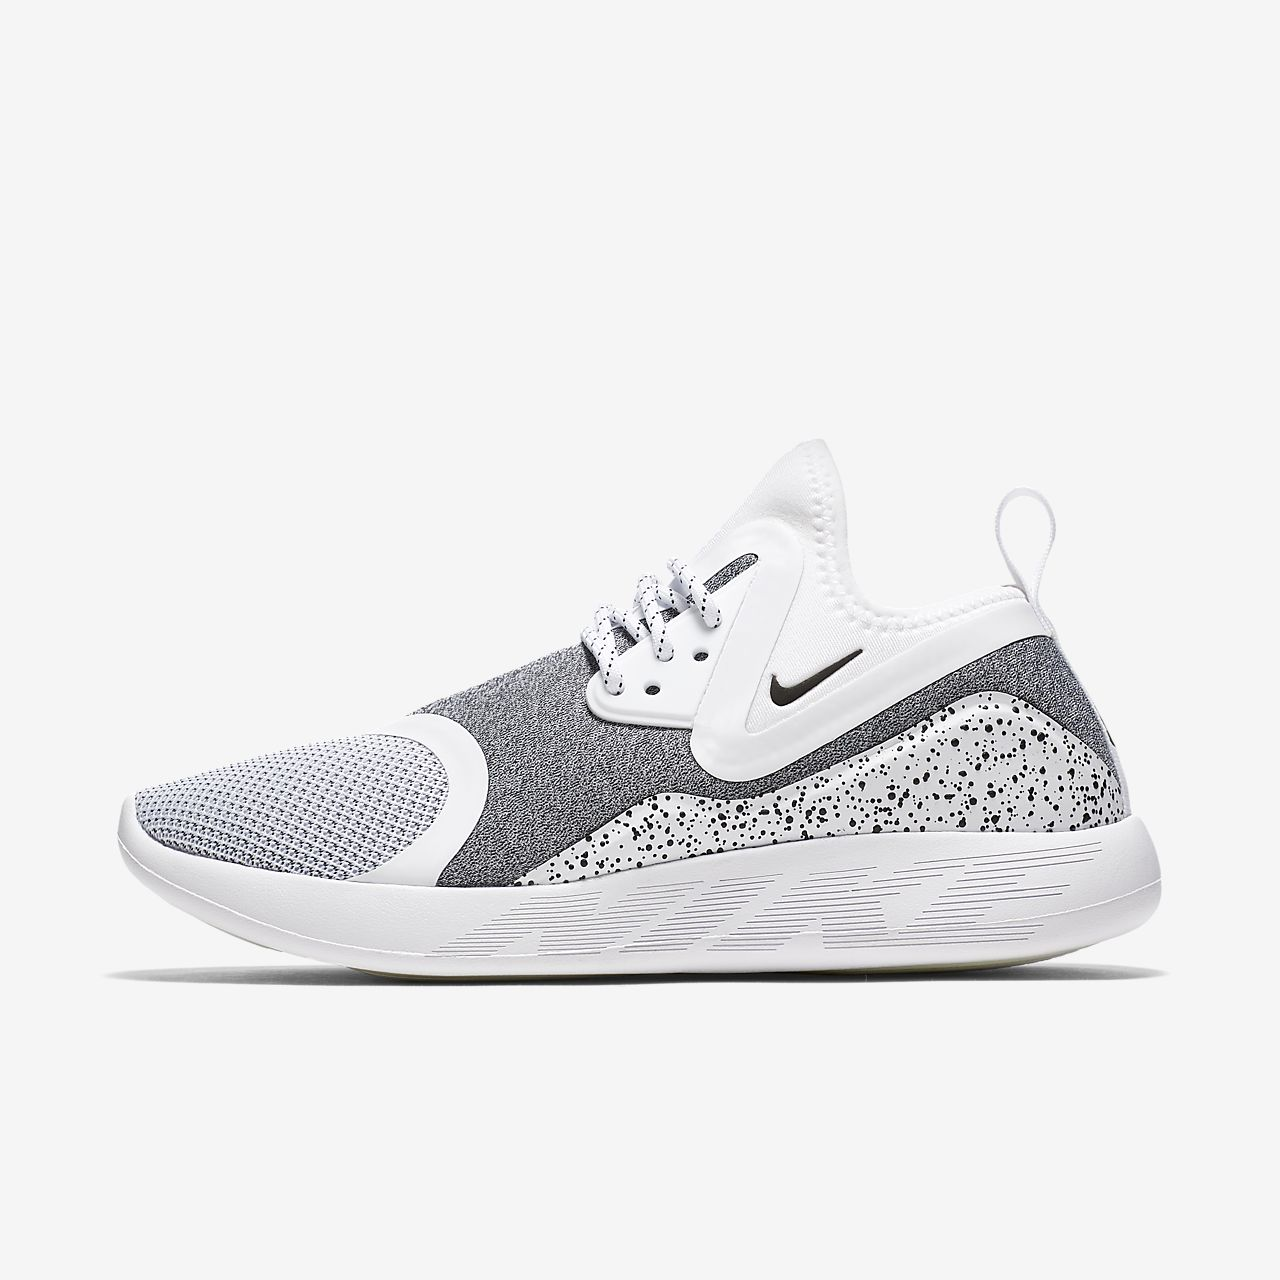 Nike Lunarcharge Essential Womens Shoe Size 6.5 Running White Black Grey